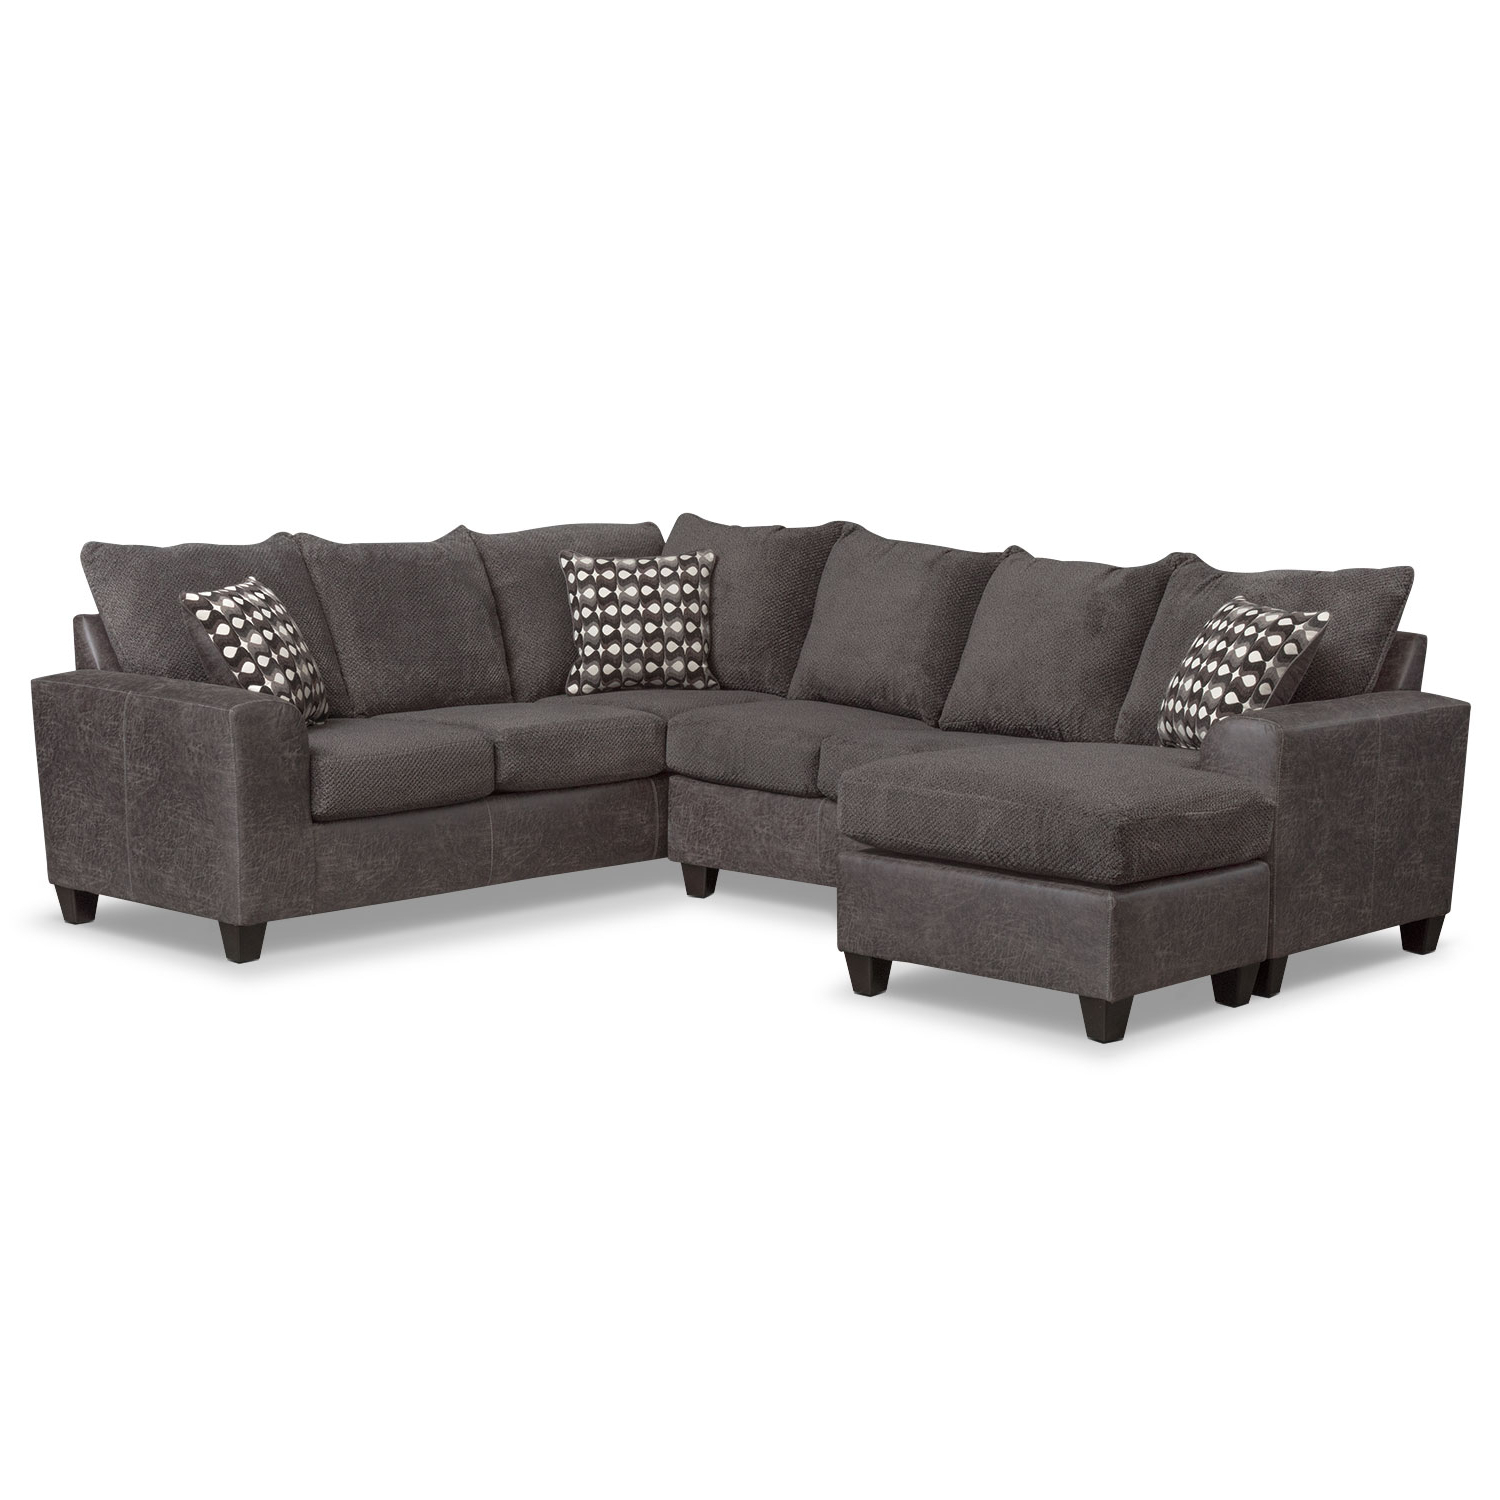 Lucy Grey 2 Piece Sleeper Sectionals With Raf Chaise With Newest Sleeper Sectional With Chaise – Tidex (View 10 of 20)